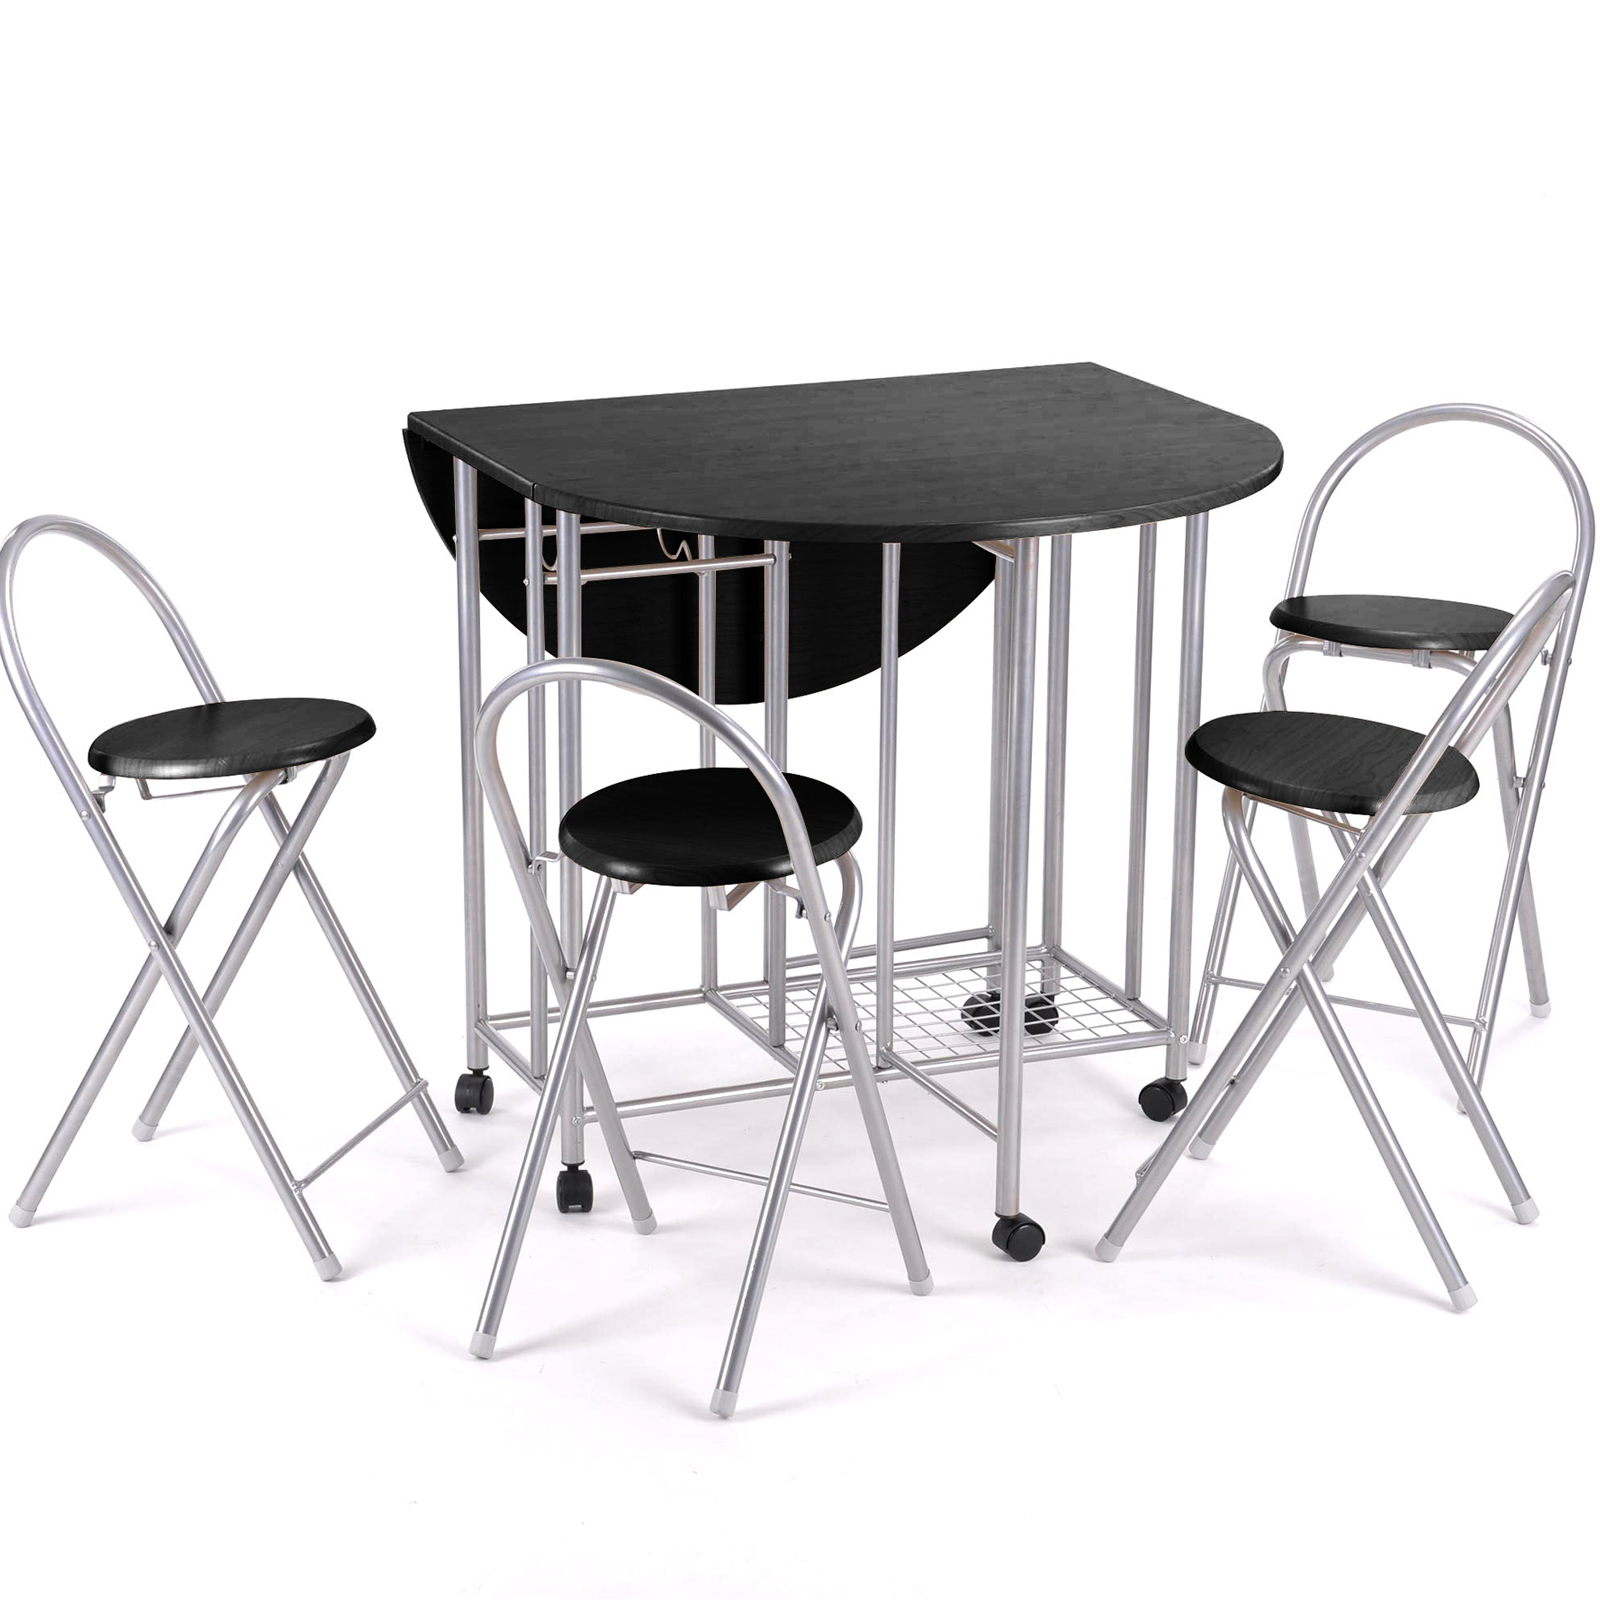 Butterfly folding table ikea for Ikea folding stool